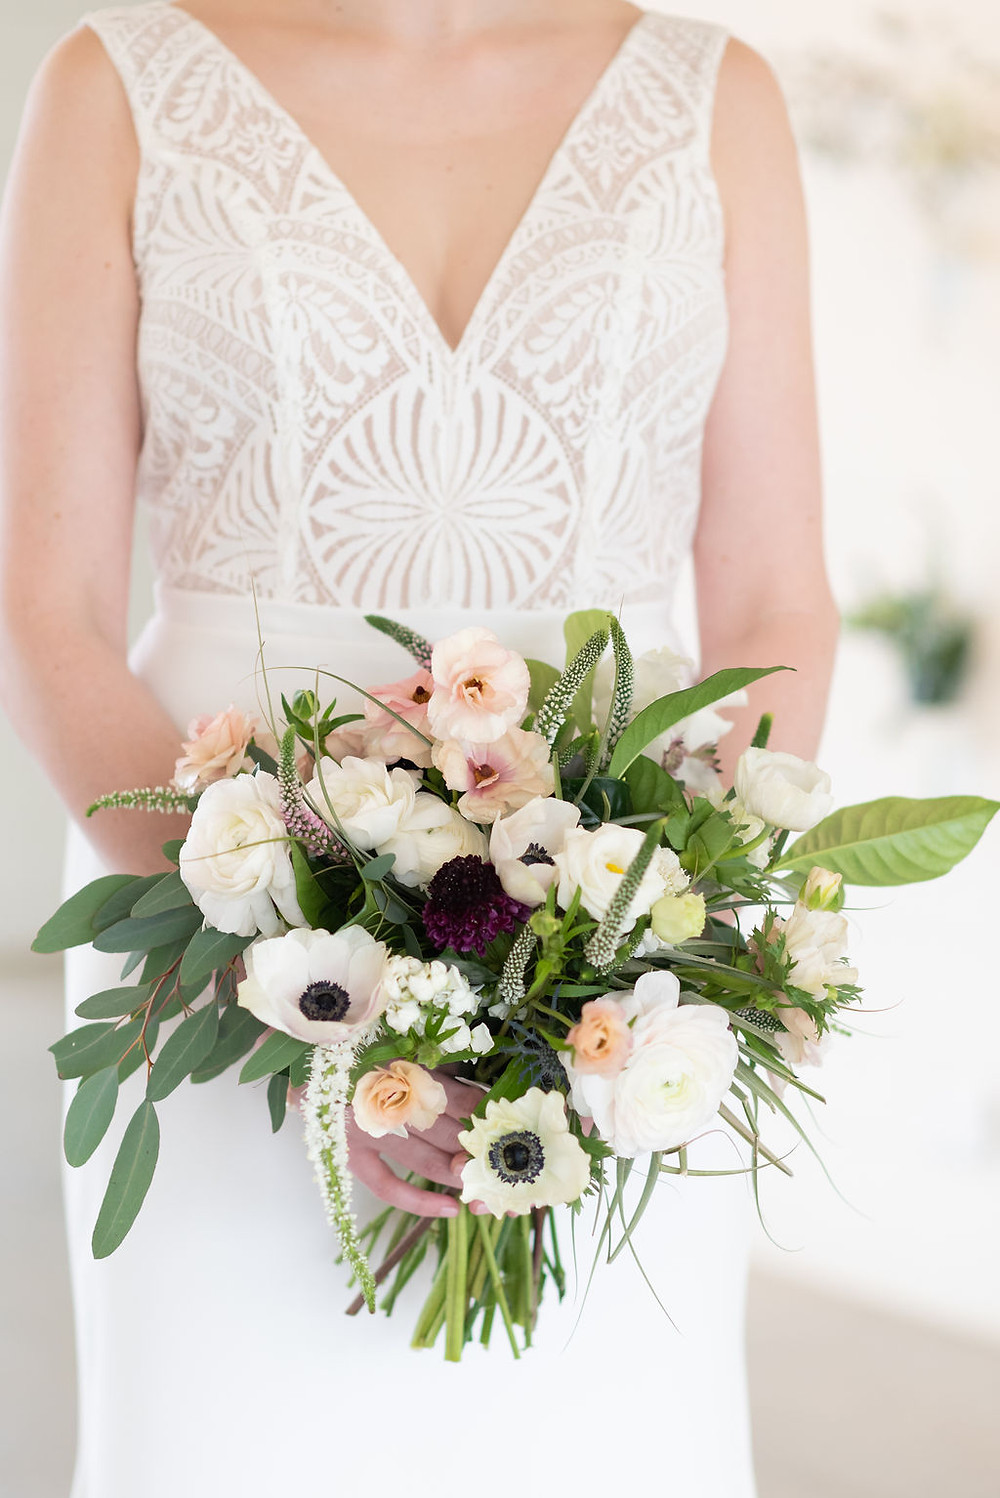 white and green bridal bouquet. bride is holding bouquet but the her head is not showing in the photo. it's from her shoulders to her knees